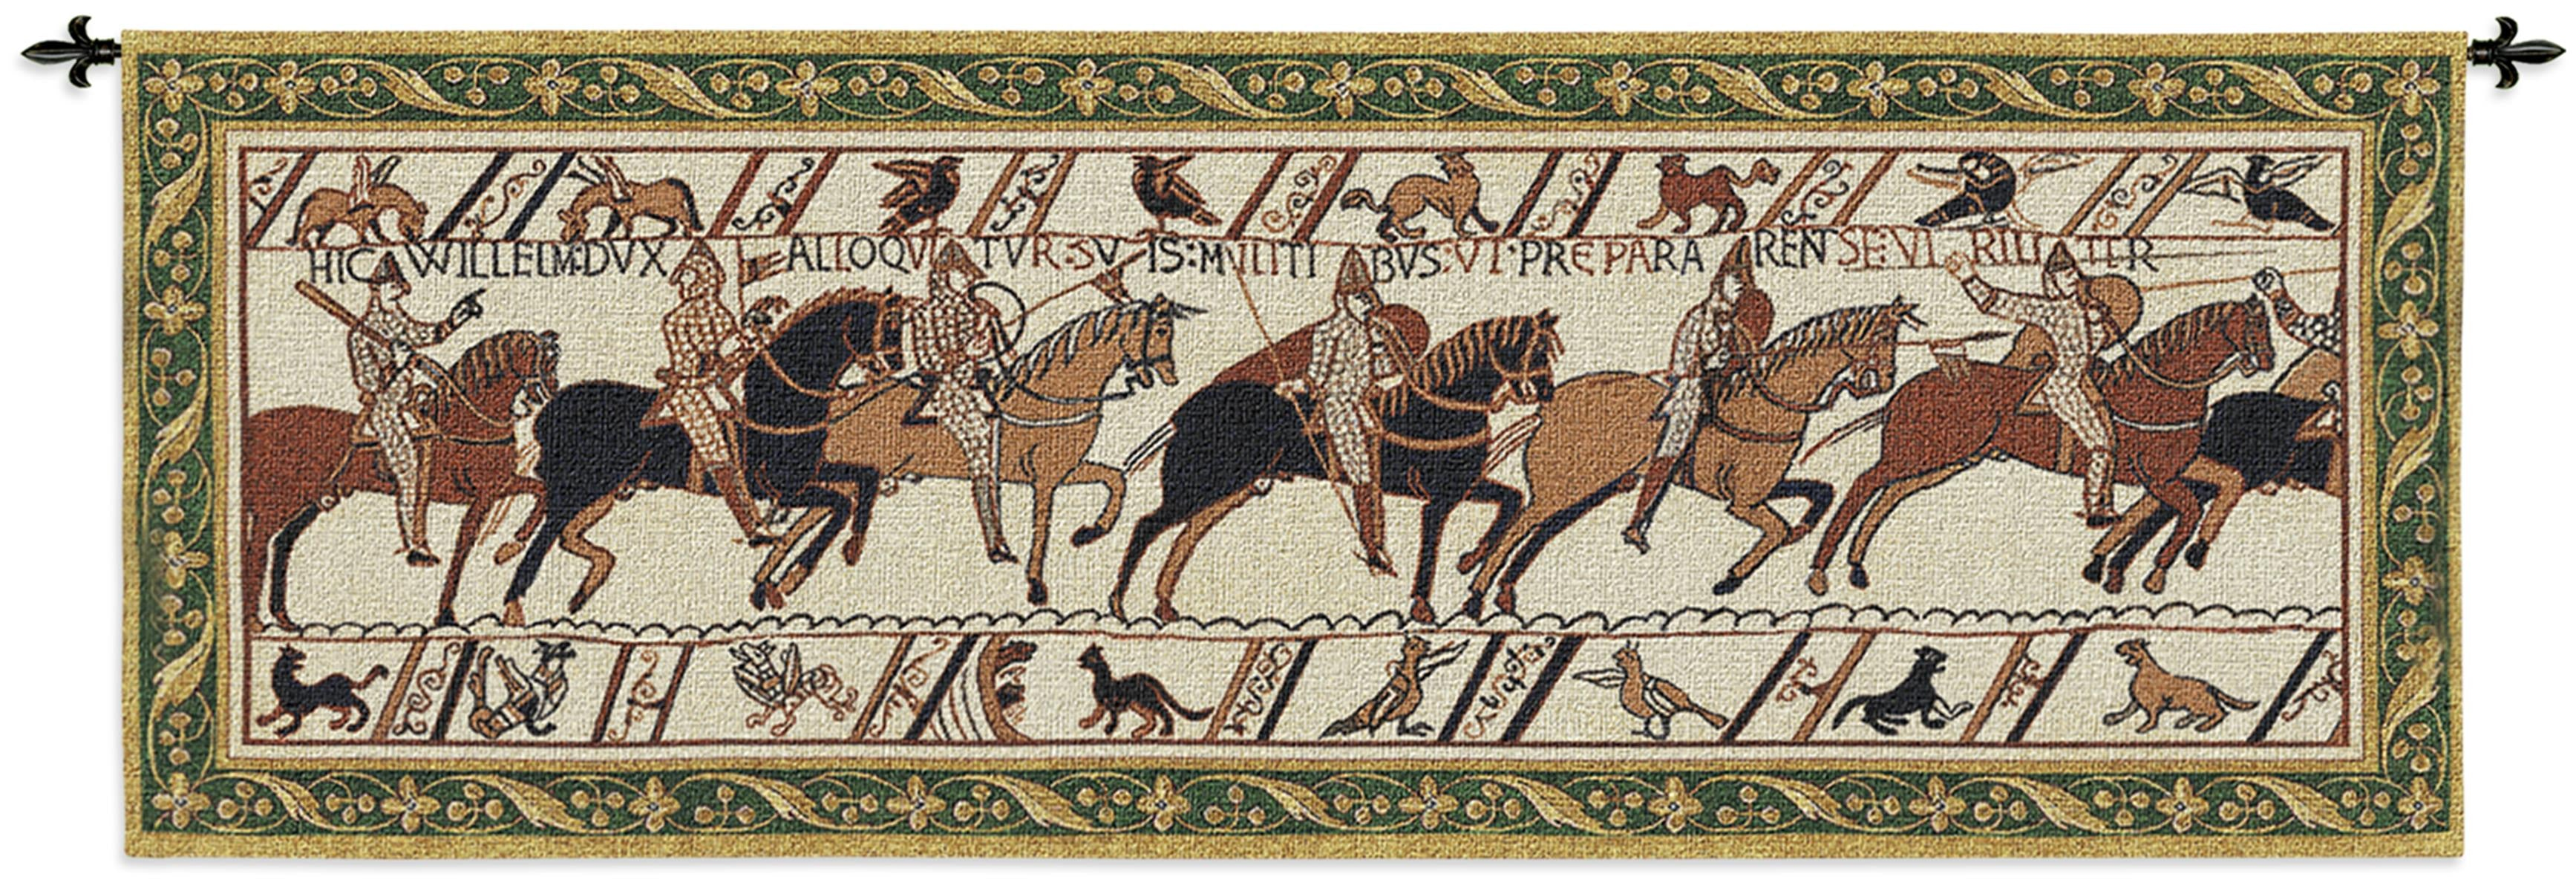 Bayeux Tapestry Wall Hanging